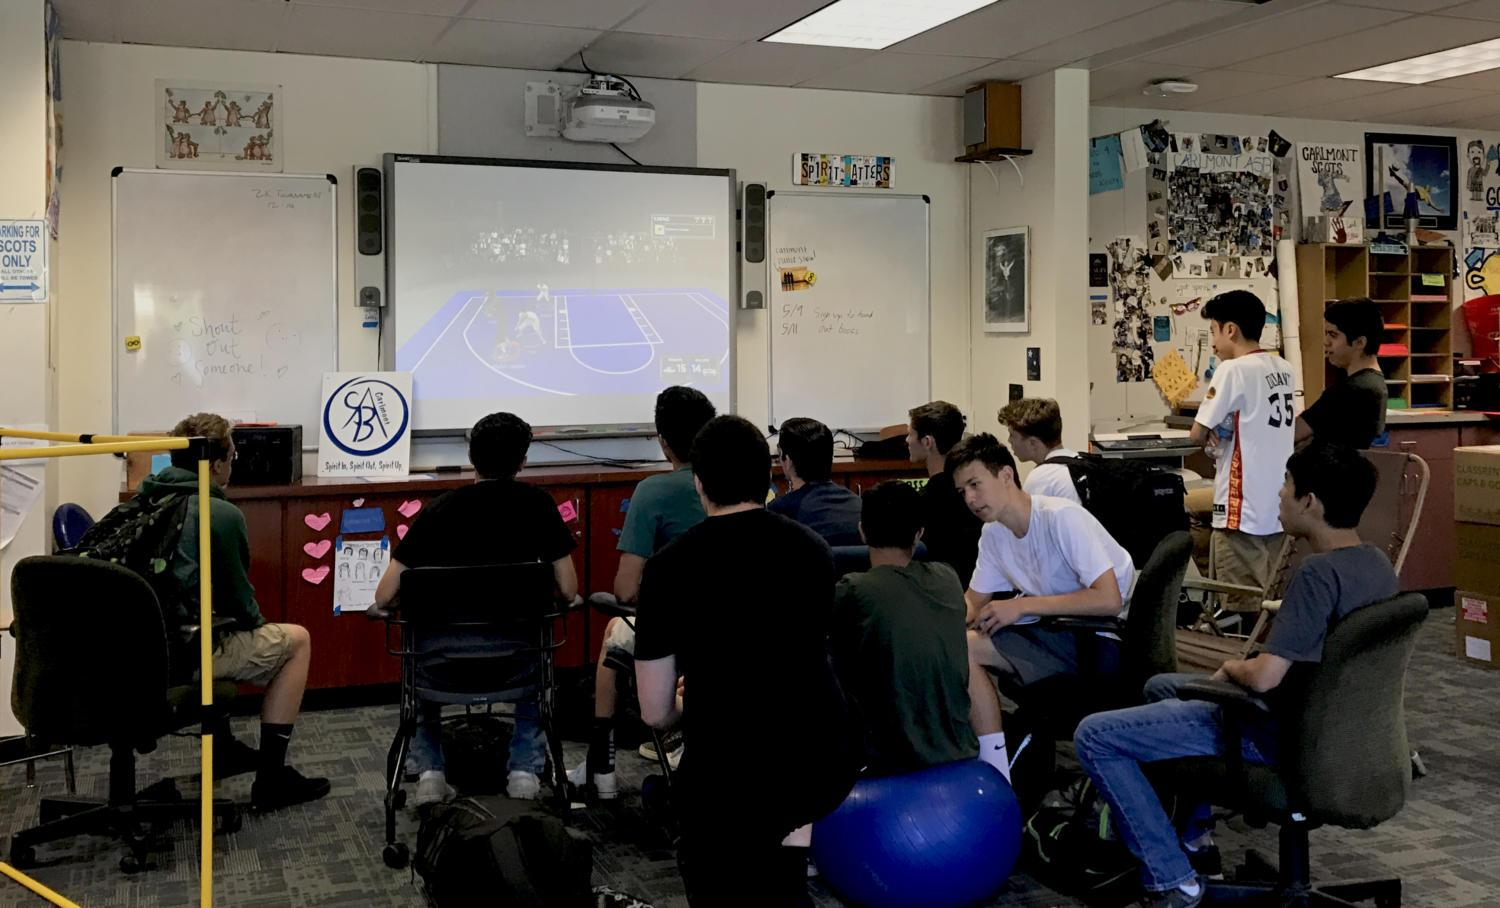 Student competitors and observers gather in the ASB room to watch a NBA 2k17 match.